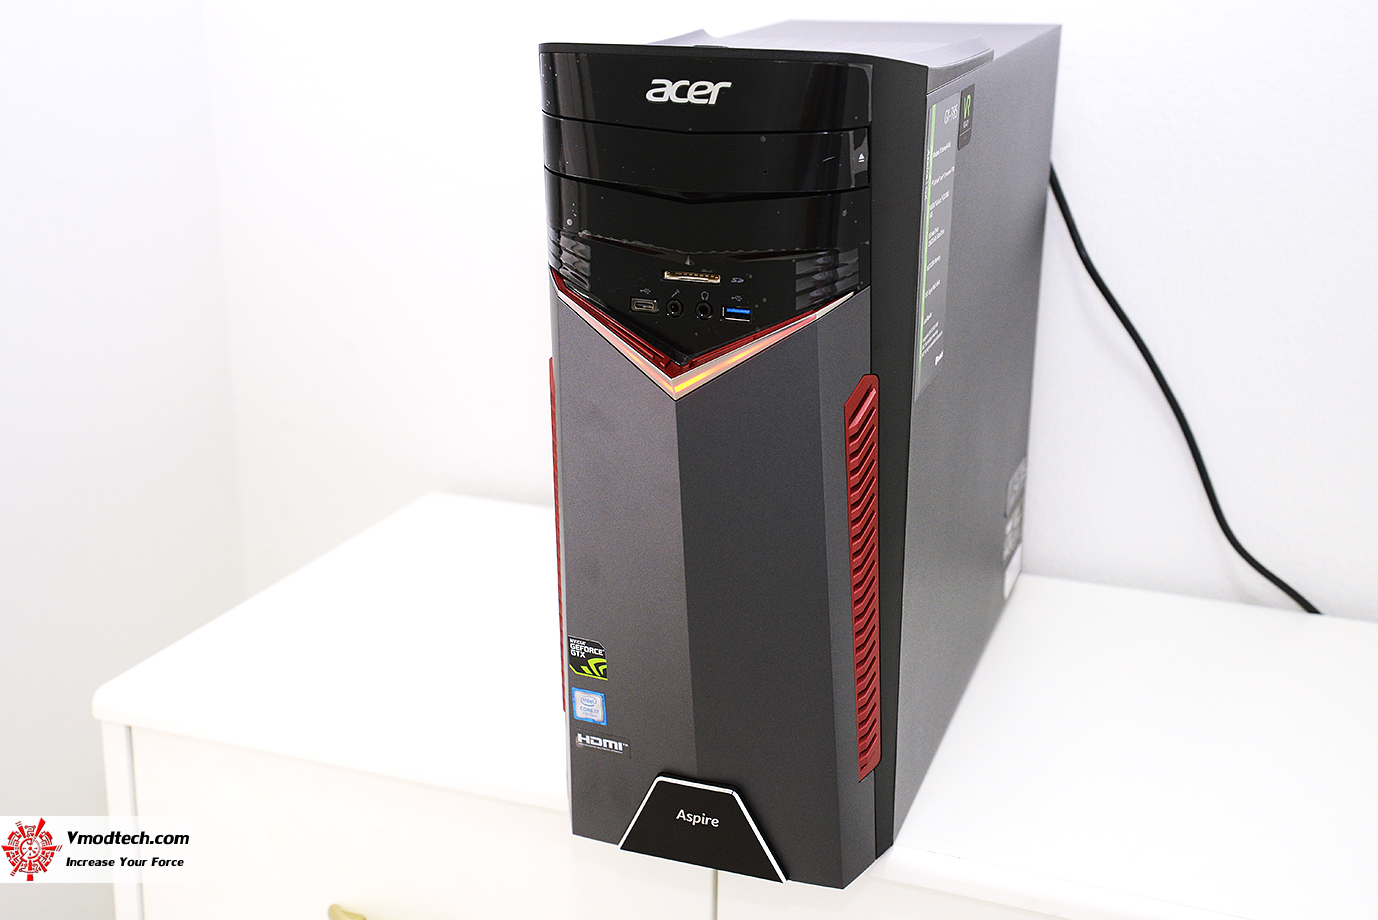 dsc 78811 Acer Aspire GX 785 Review